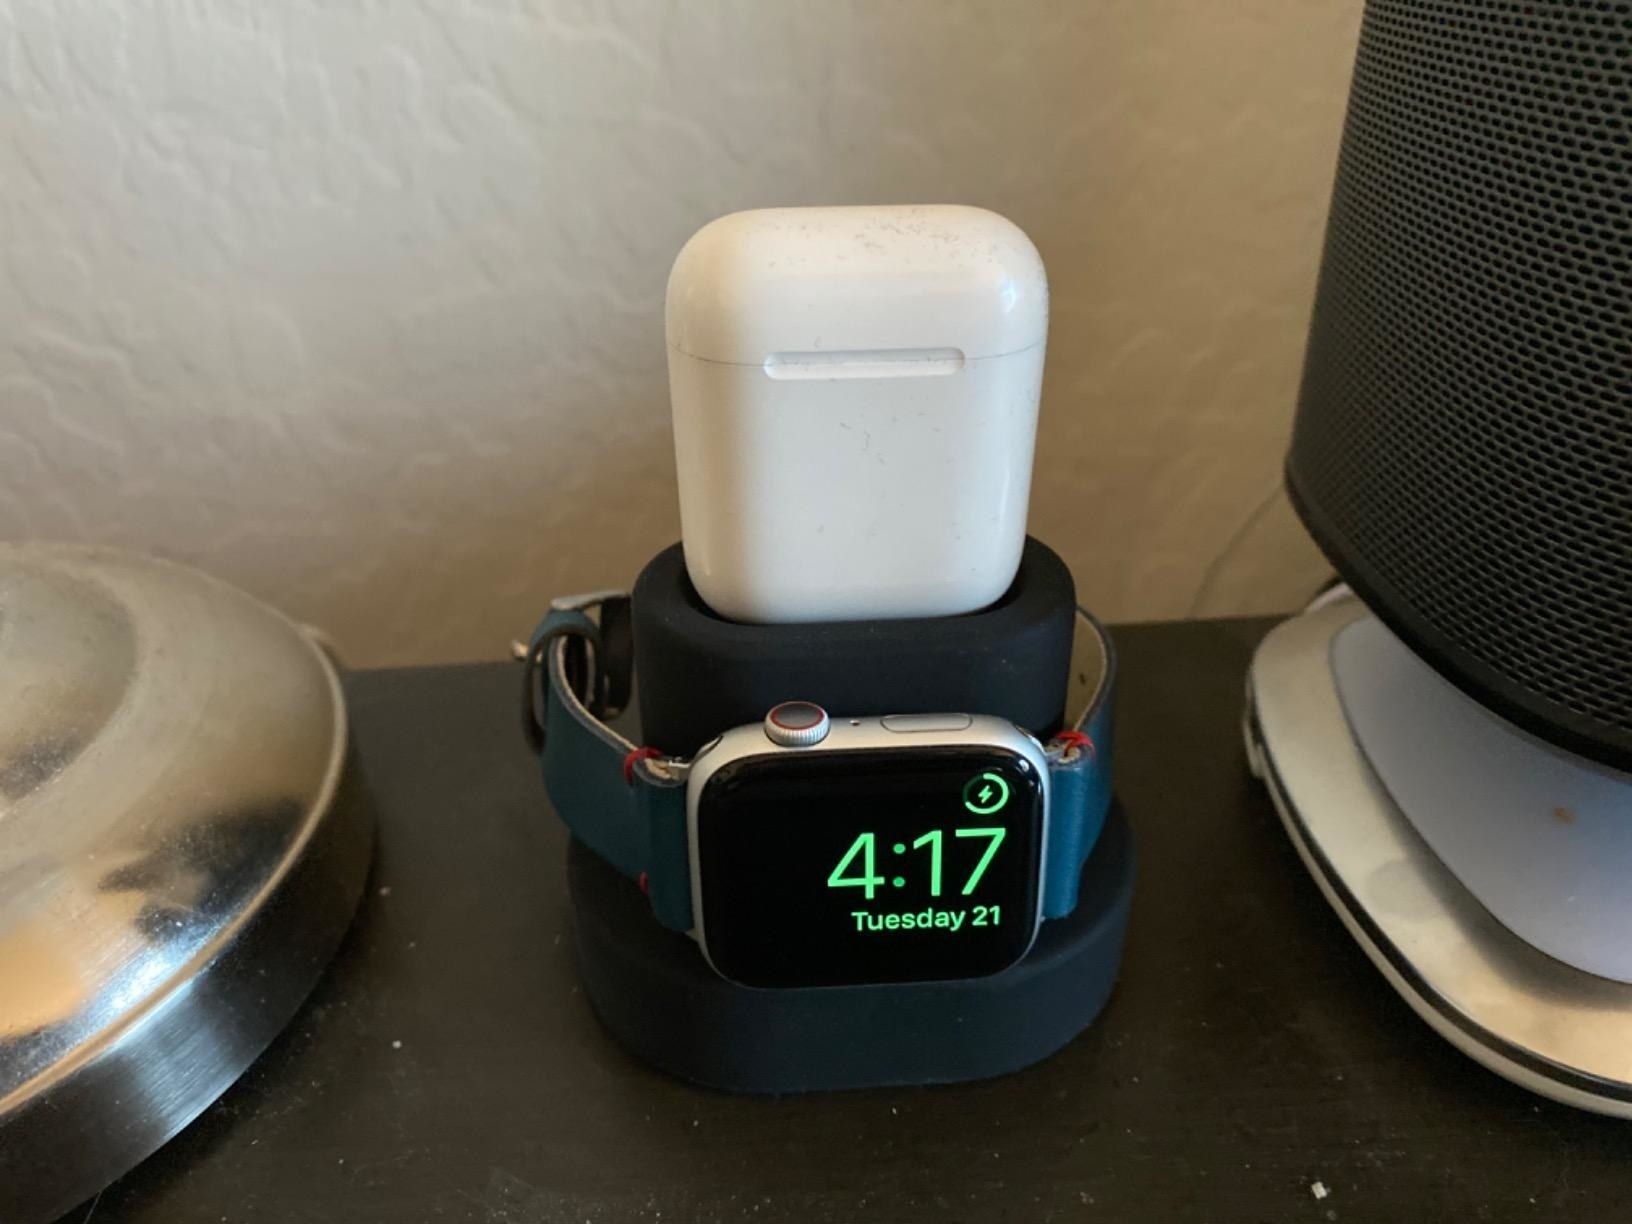 Reviewer's AirPods case and Apple Watch charging simultaneously